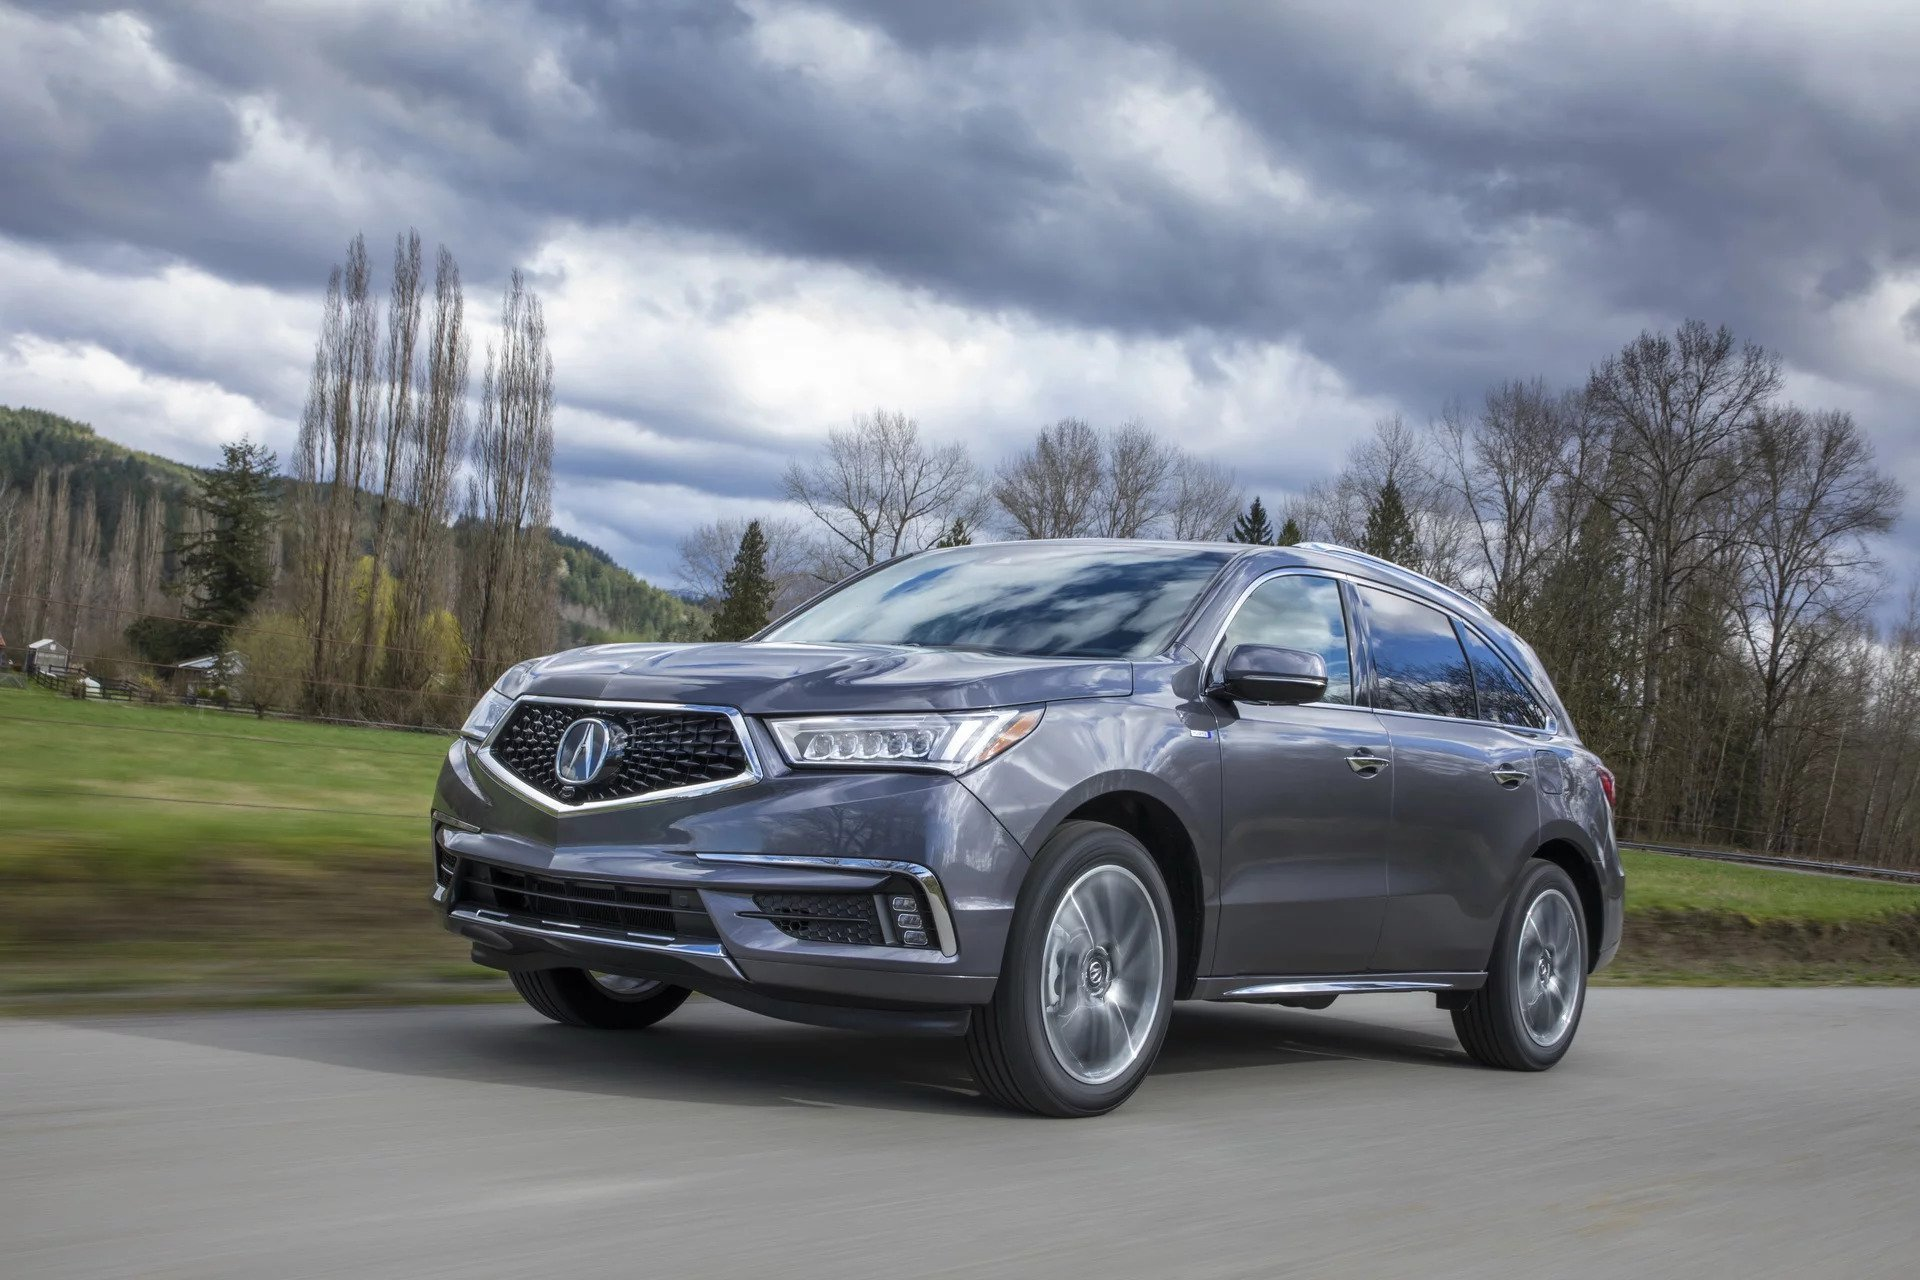 New 2020 Acura-MDX SH-AWD MDX SH-AWD for sale $46,300 at M and V Leasing in Brooklyn NY 11223 1